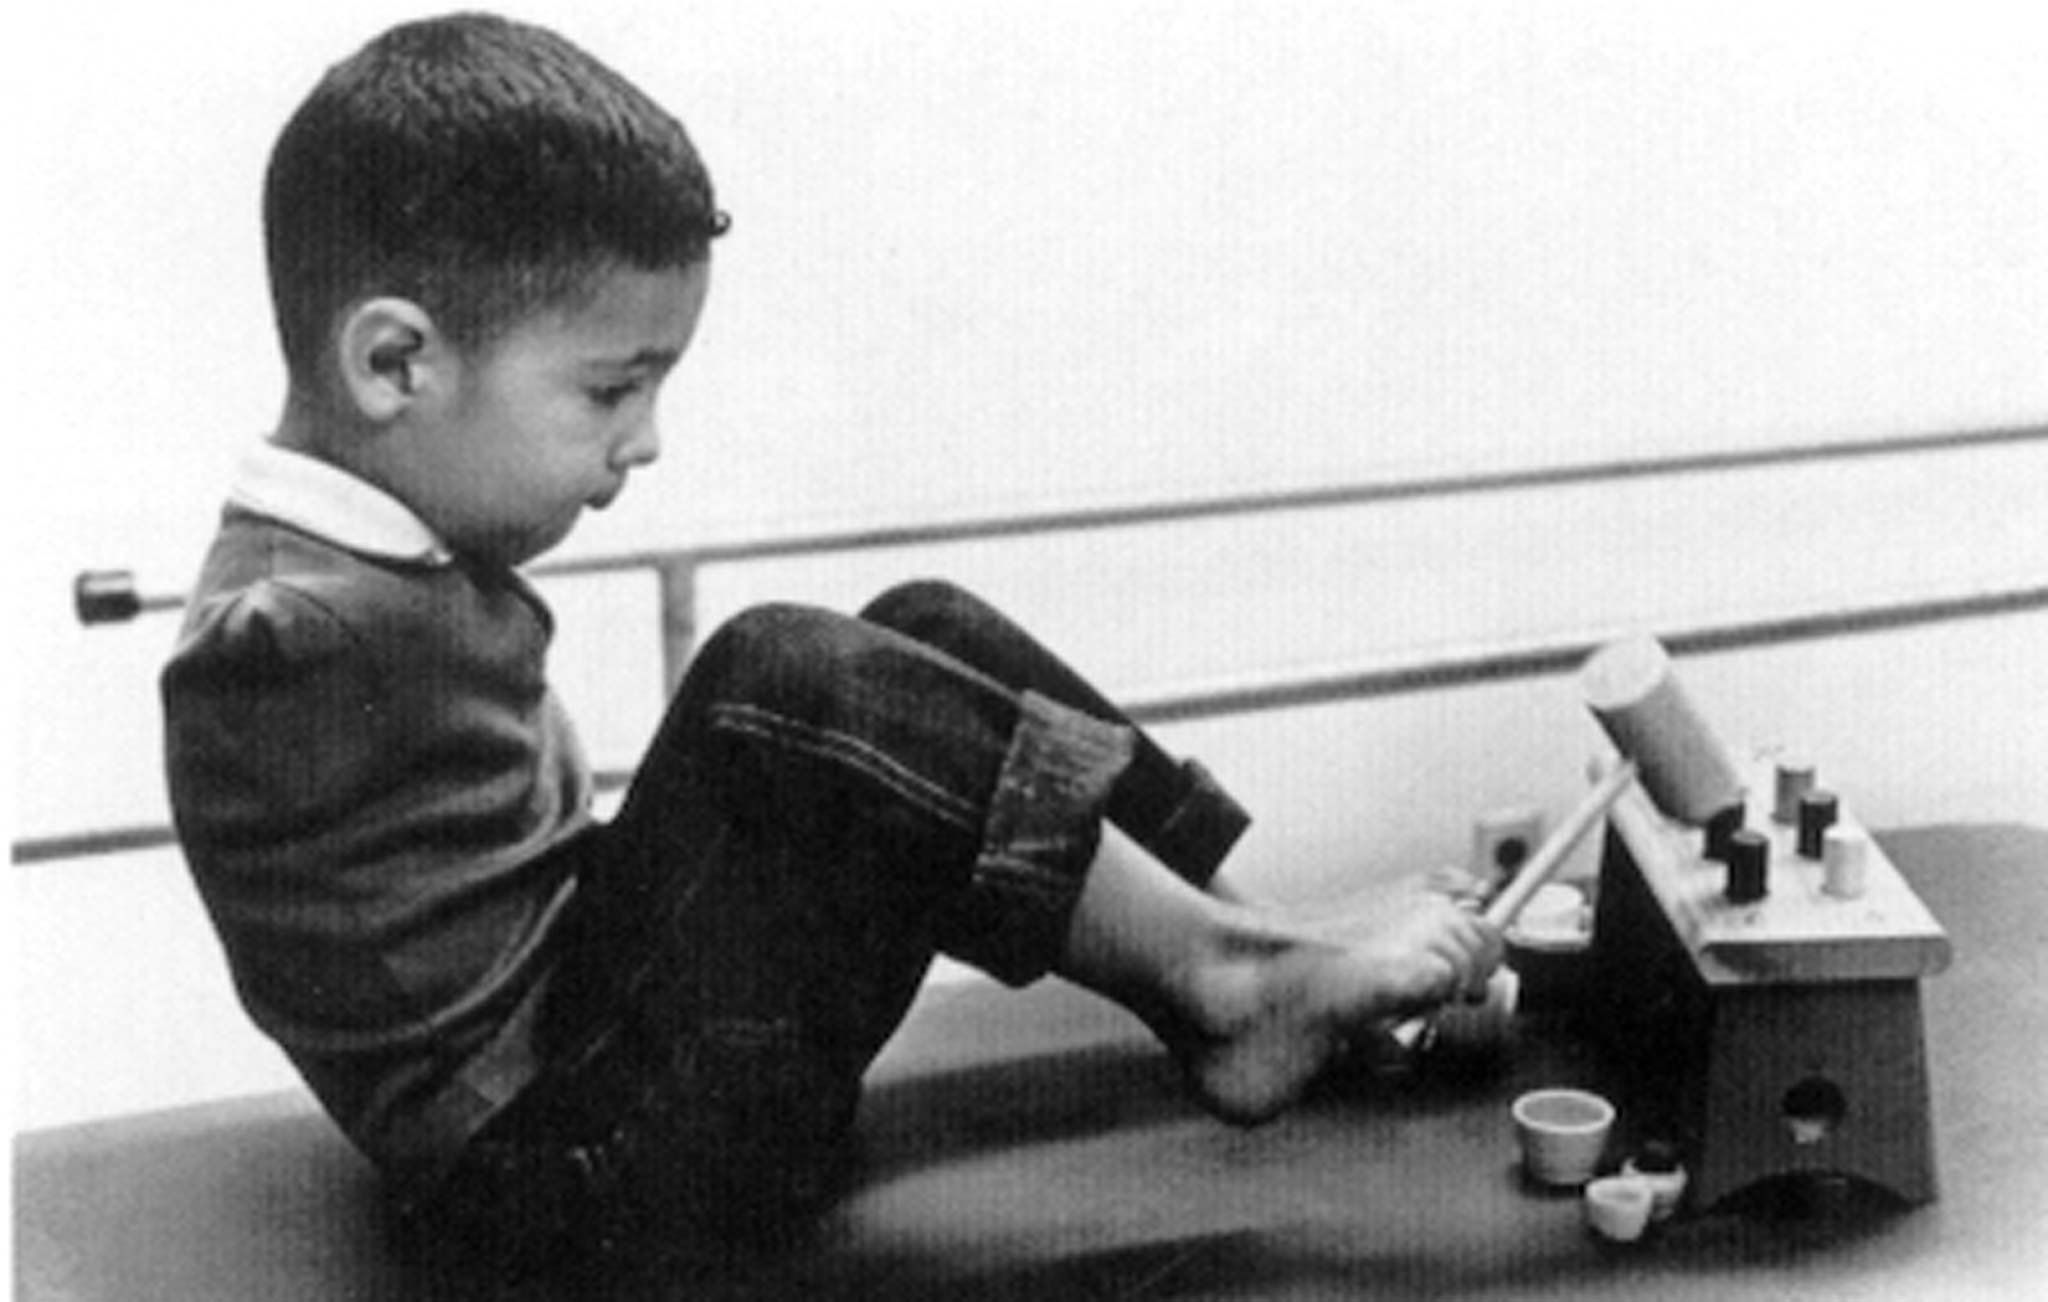 Thalidomide victim Tony Melendez is shown in an undated file photo at age 4. Melendez, who lives in Dallas, is one of a few t